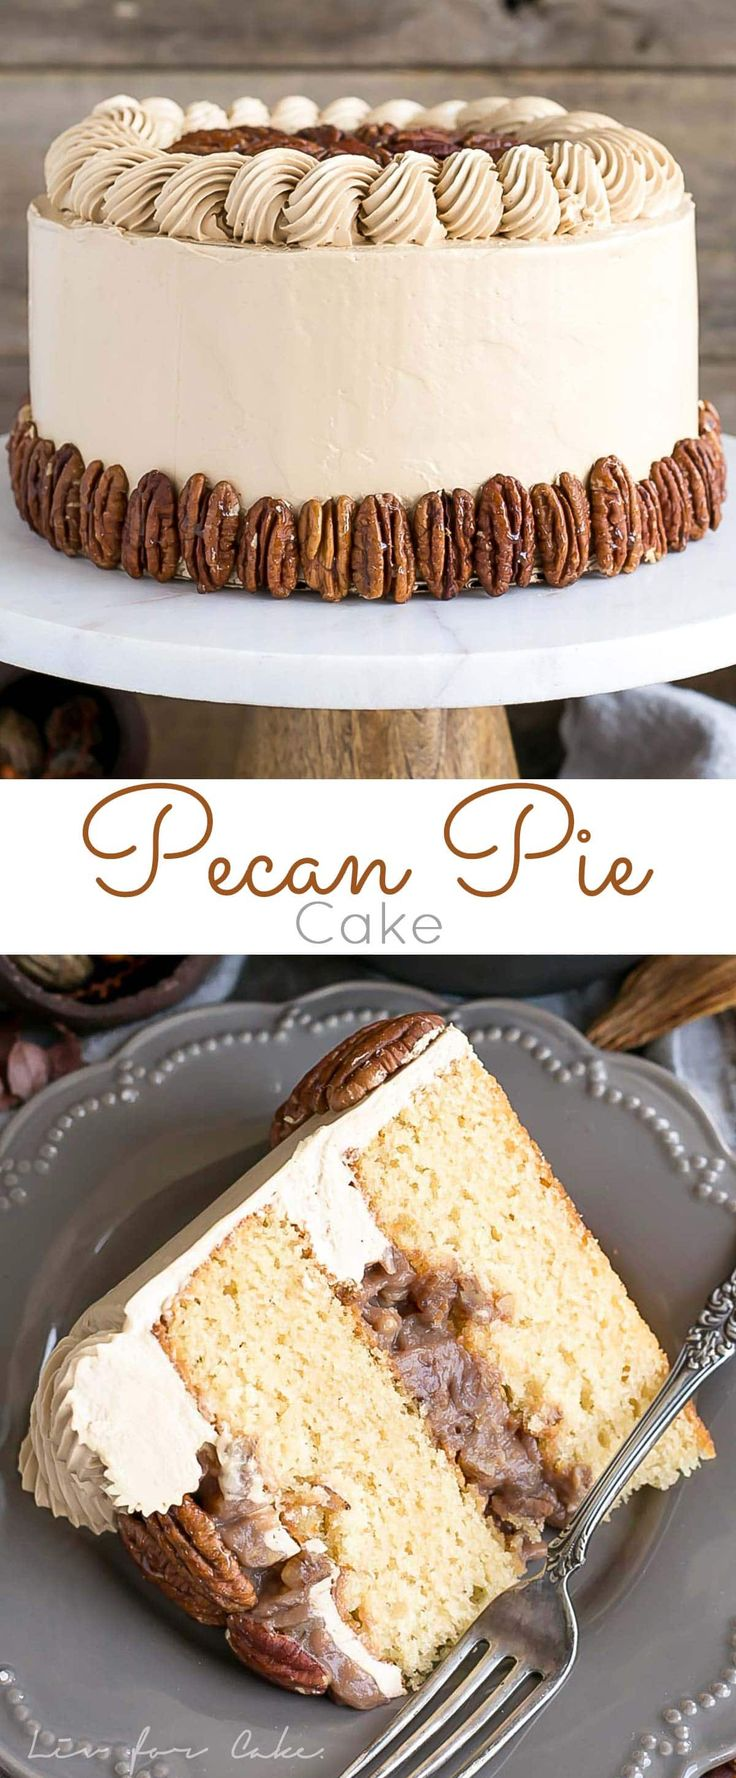 This Pecan Pie Cake is perfect for your holiday get-togethers! Brown sugar cake layers and buttercream filled with traditional pecan pie filling. | livforcake.com via @livforcake